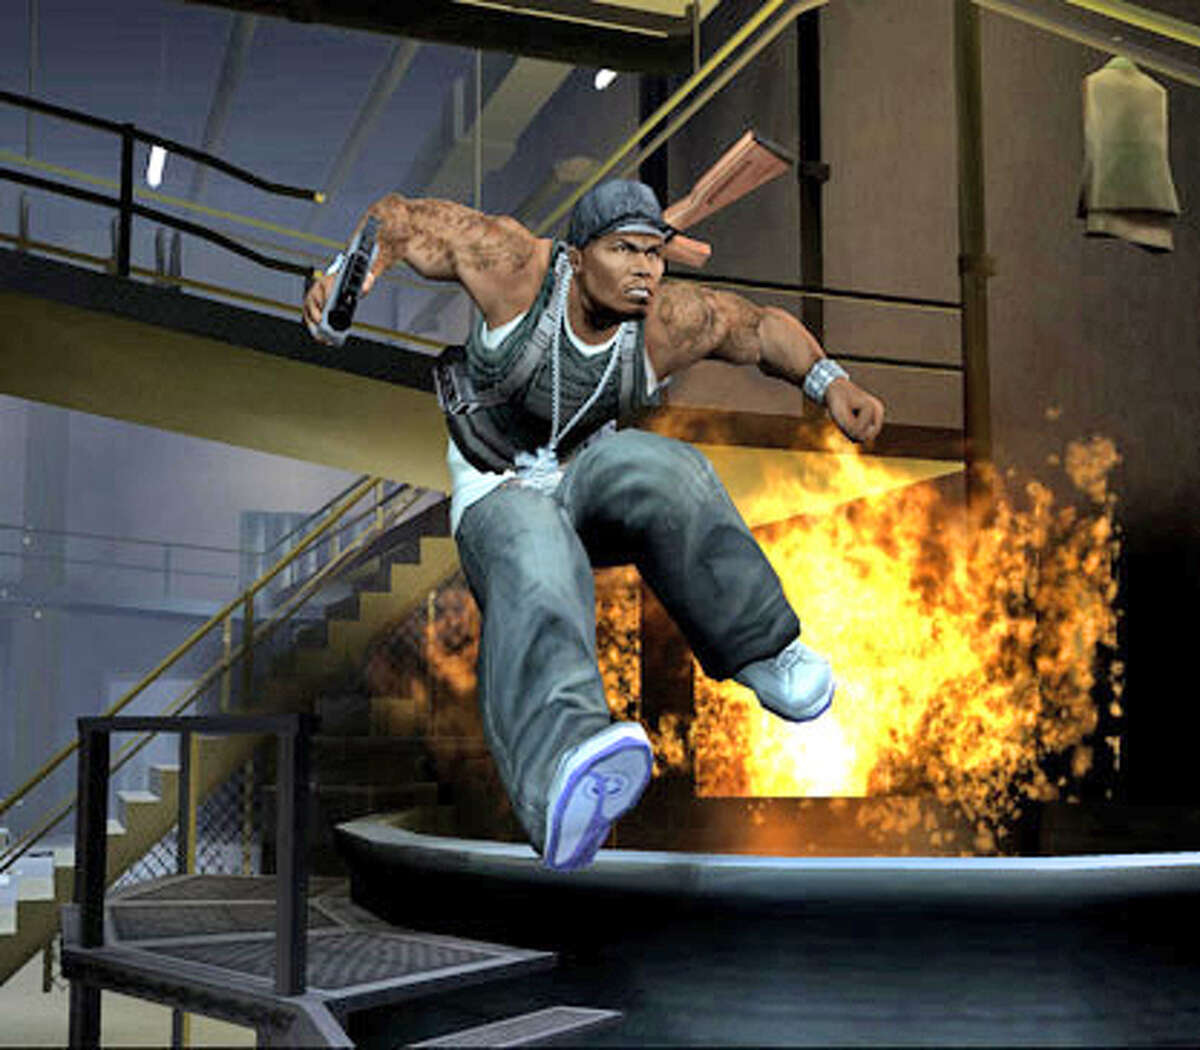 The game is 50 Cent: Bulletproof for the PlayStation 2 and Xbox.